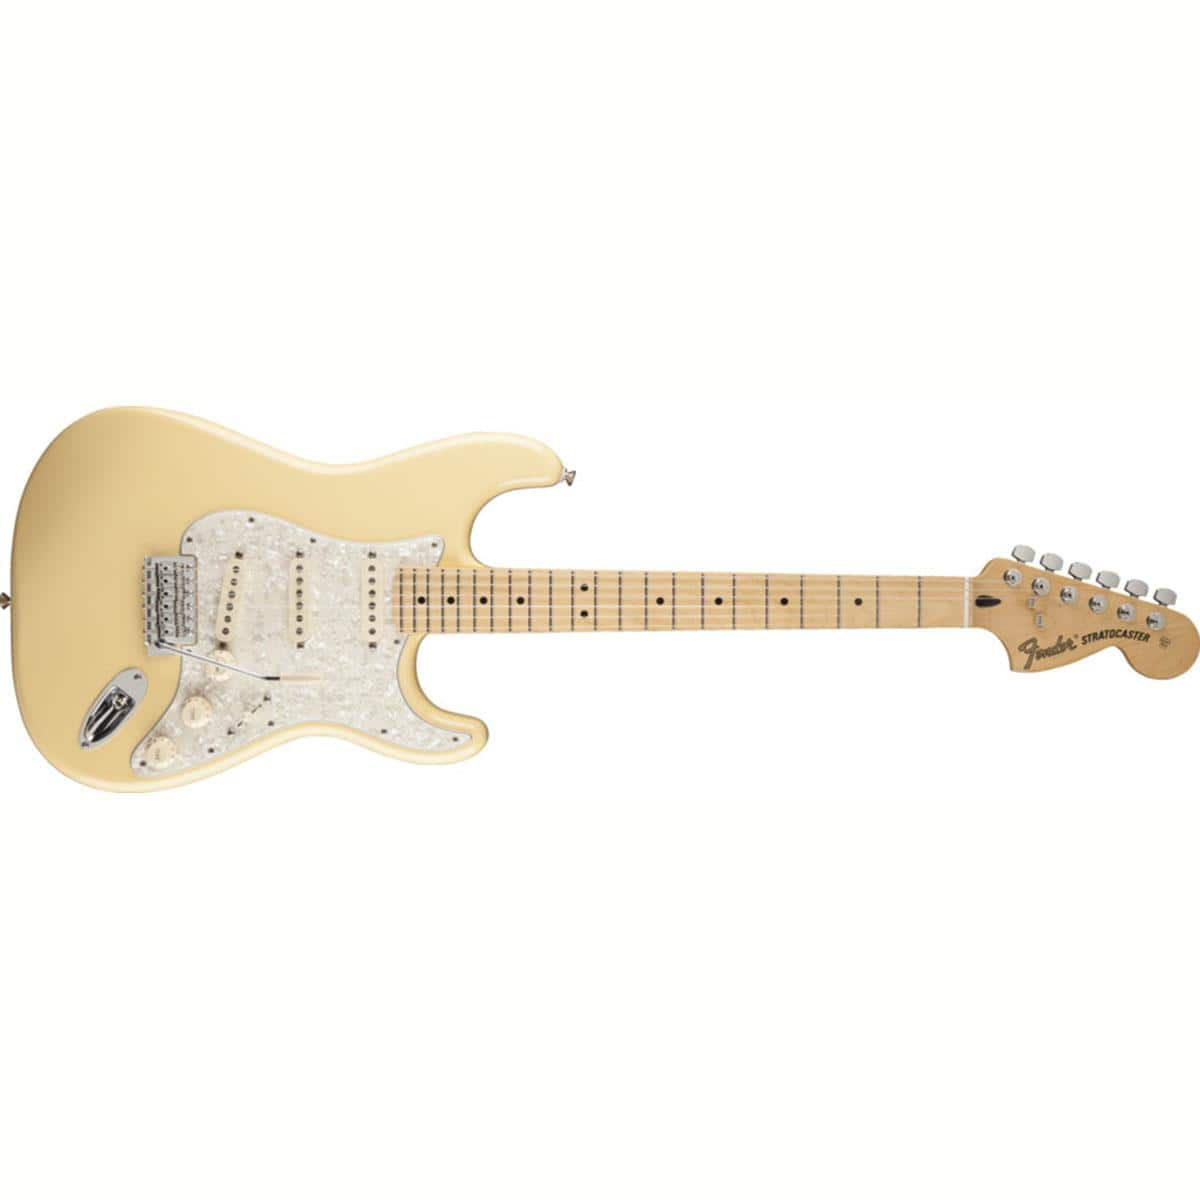 Fender Deluxe Roadhouse Stratocaster Electric Guitar (Vintage White)  $385 + Free Shipping